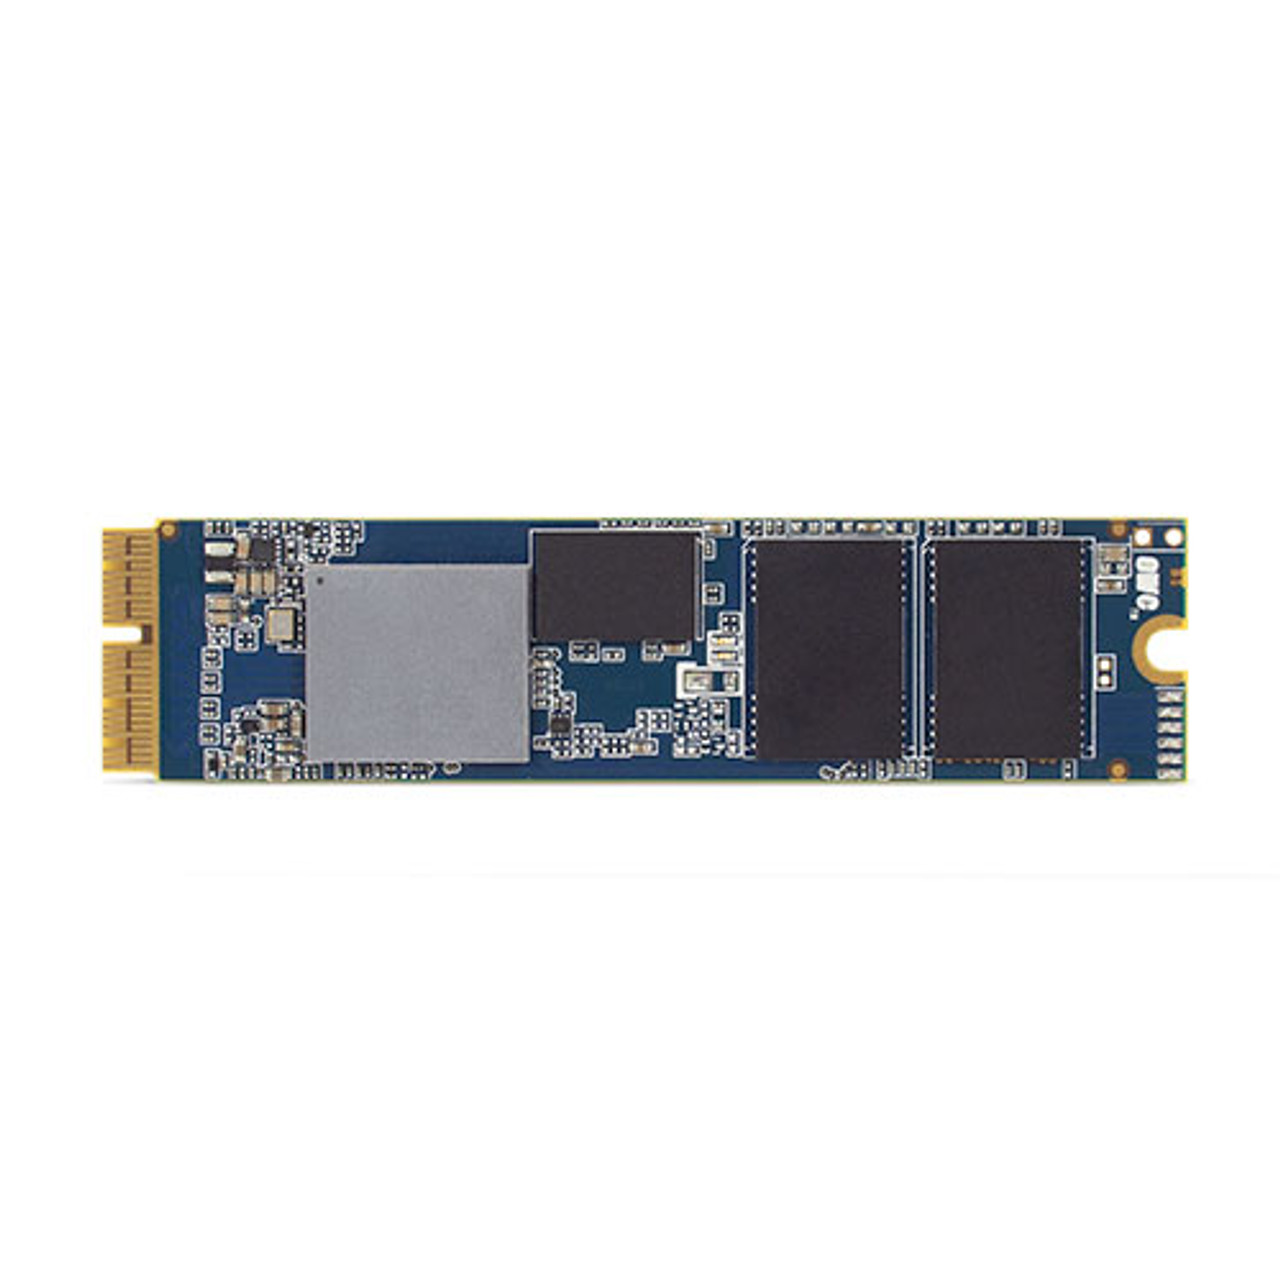 OWC 240GB Aura Pro X2 SSD upgrade (SSD only) (for MacBook Pro w/ Retina Display Late 2013 - Mid 2015, MacBook Air Mid 2013 - Mid 2017 and Mac Pro Late 2013)